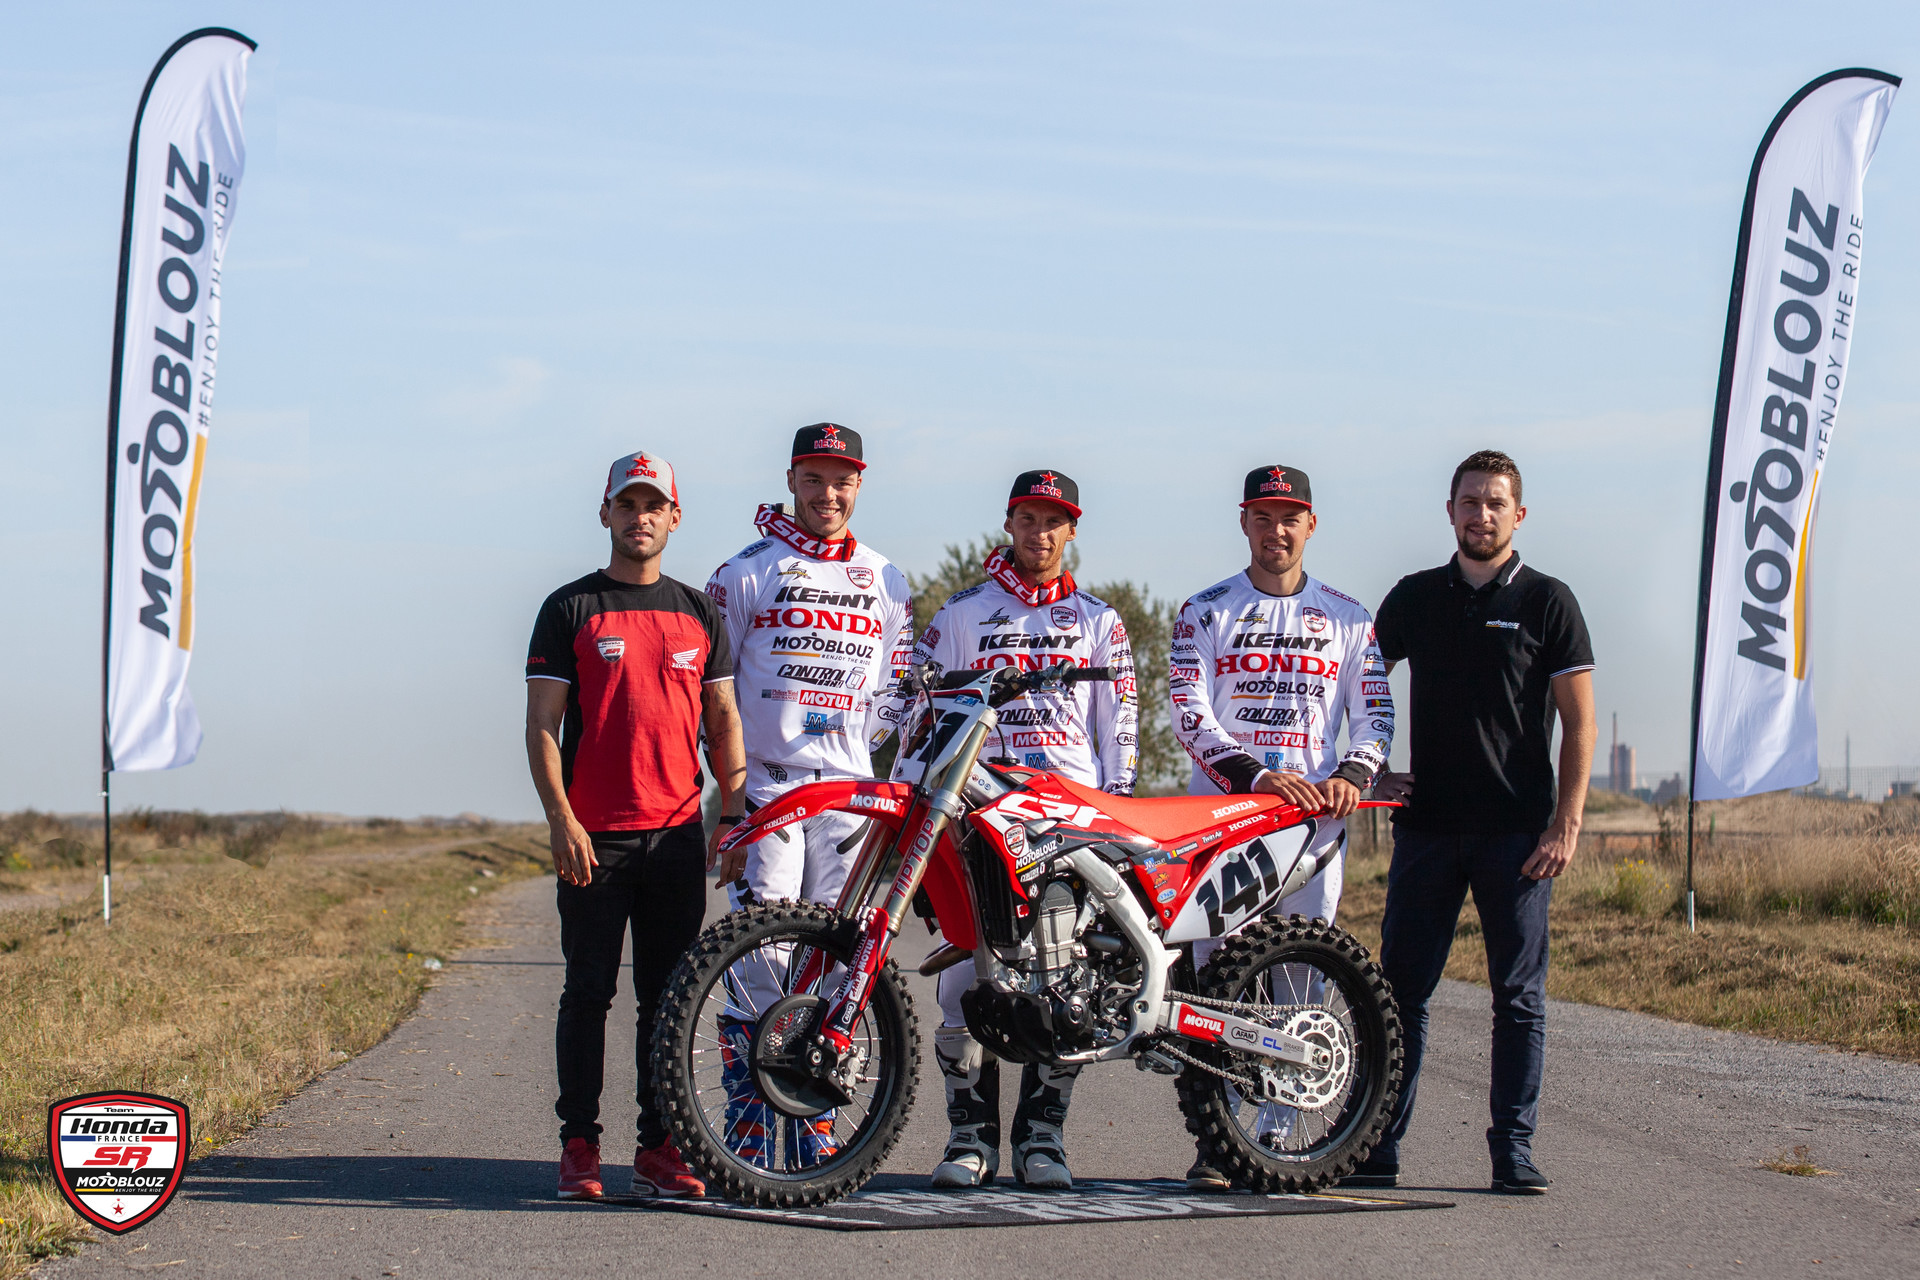 Team Honda SR